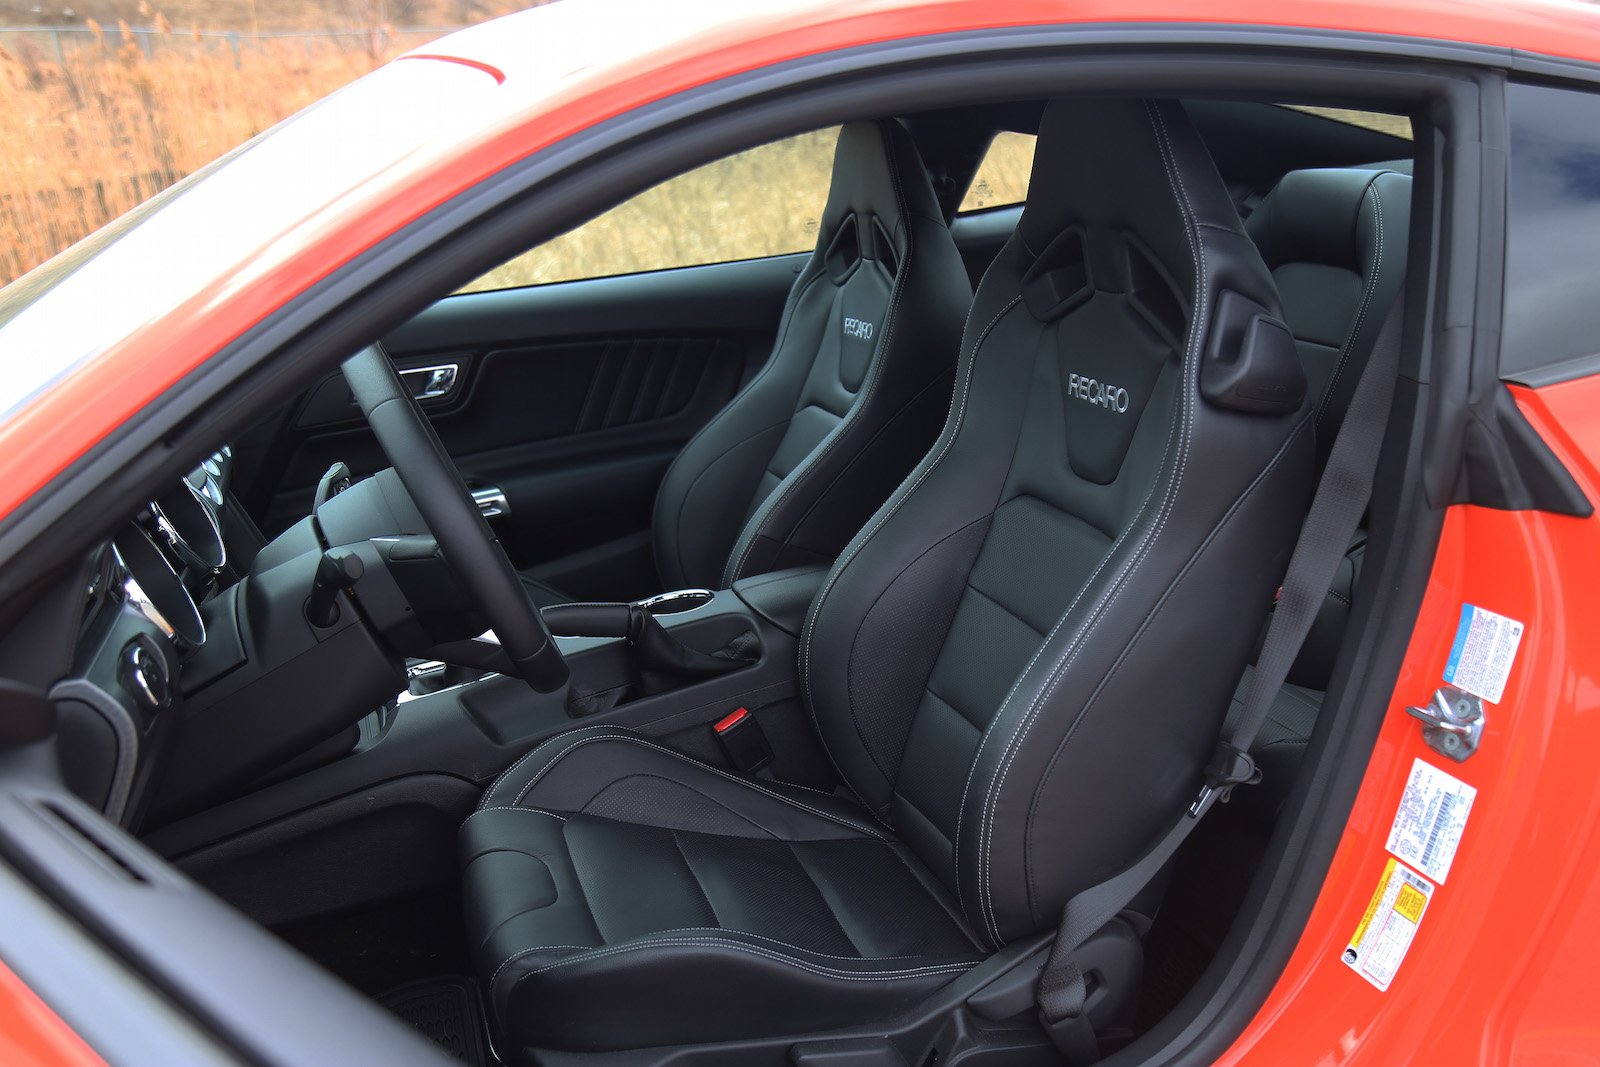 2015 Ford Mustang Gt Recaro Leather Seats ...